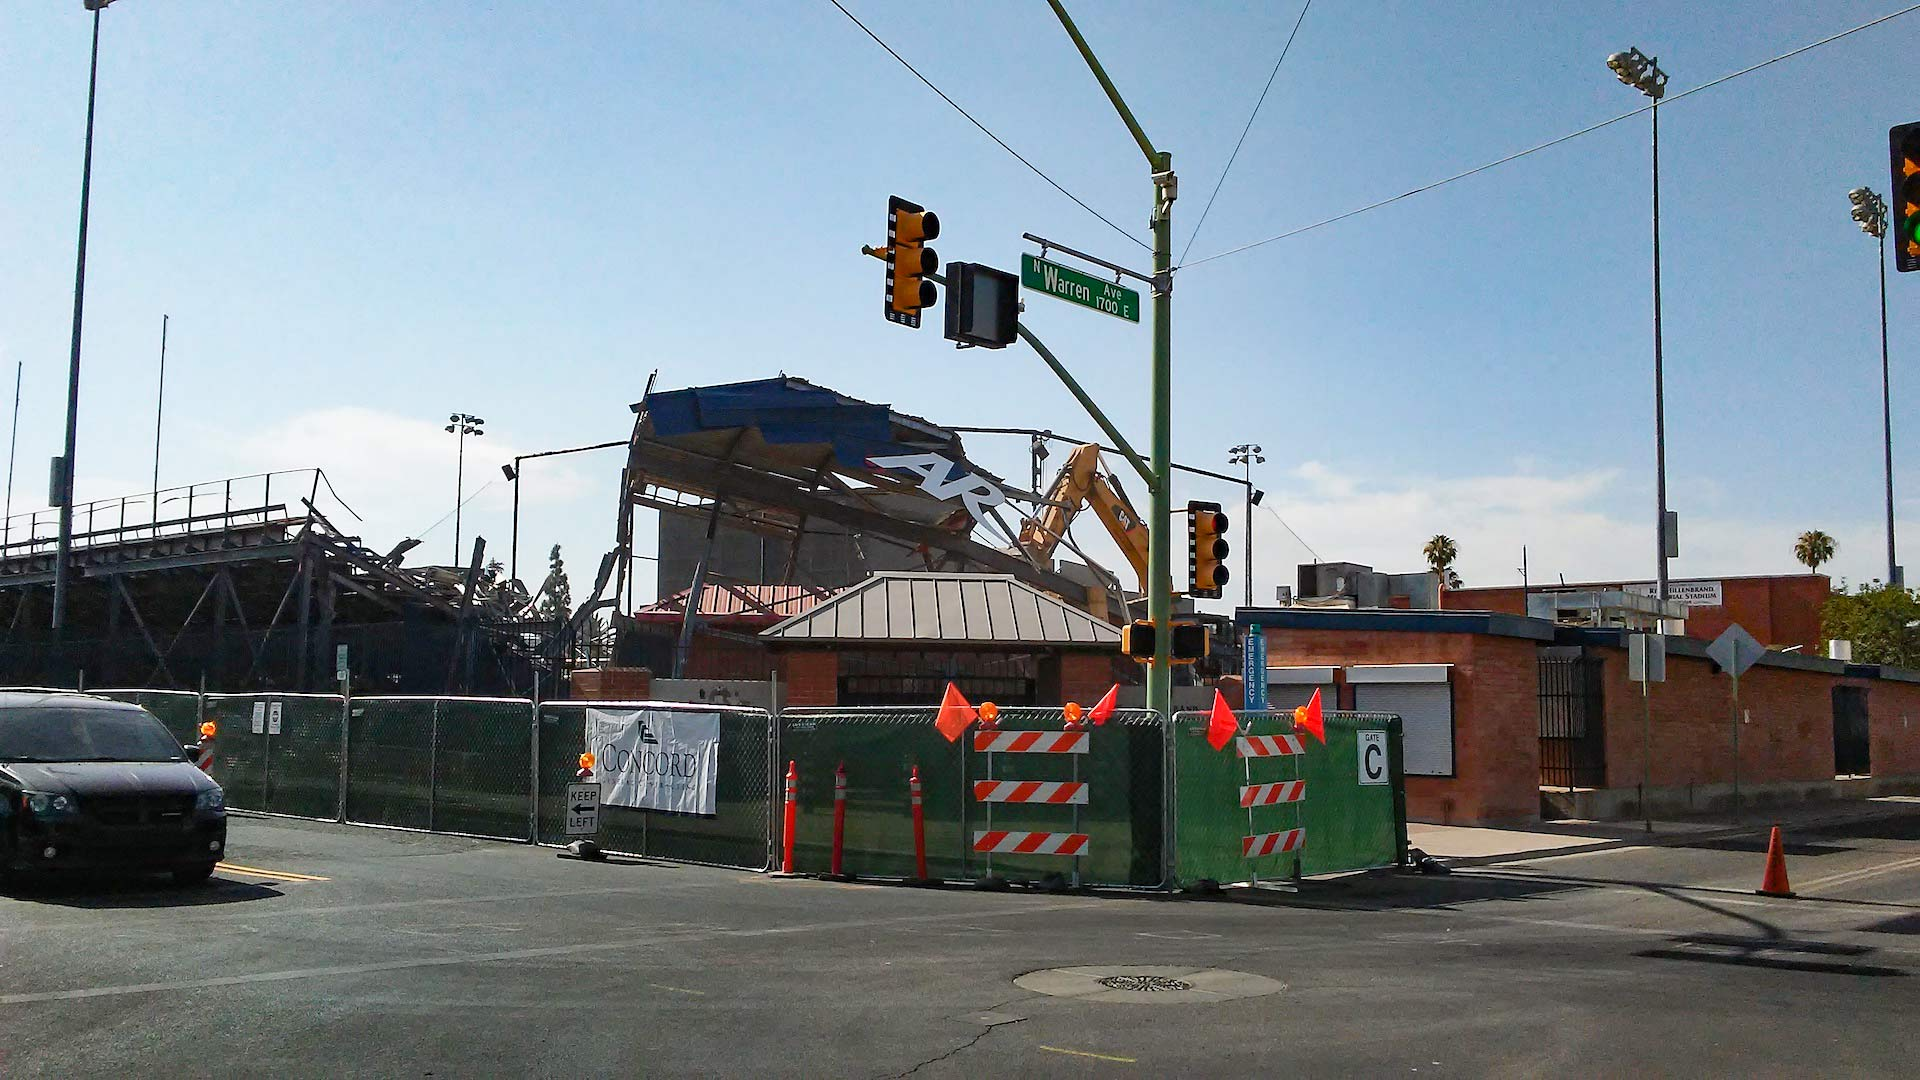 Demolition is underway for improvements at Rita Hillenbrand Stadium.